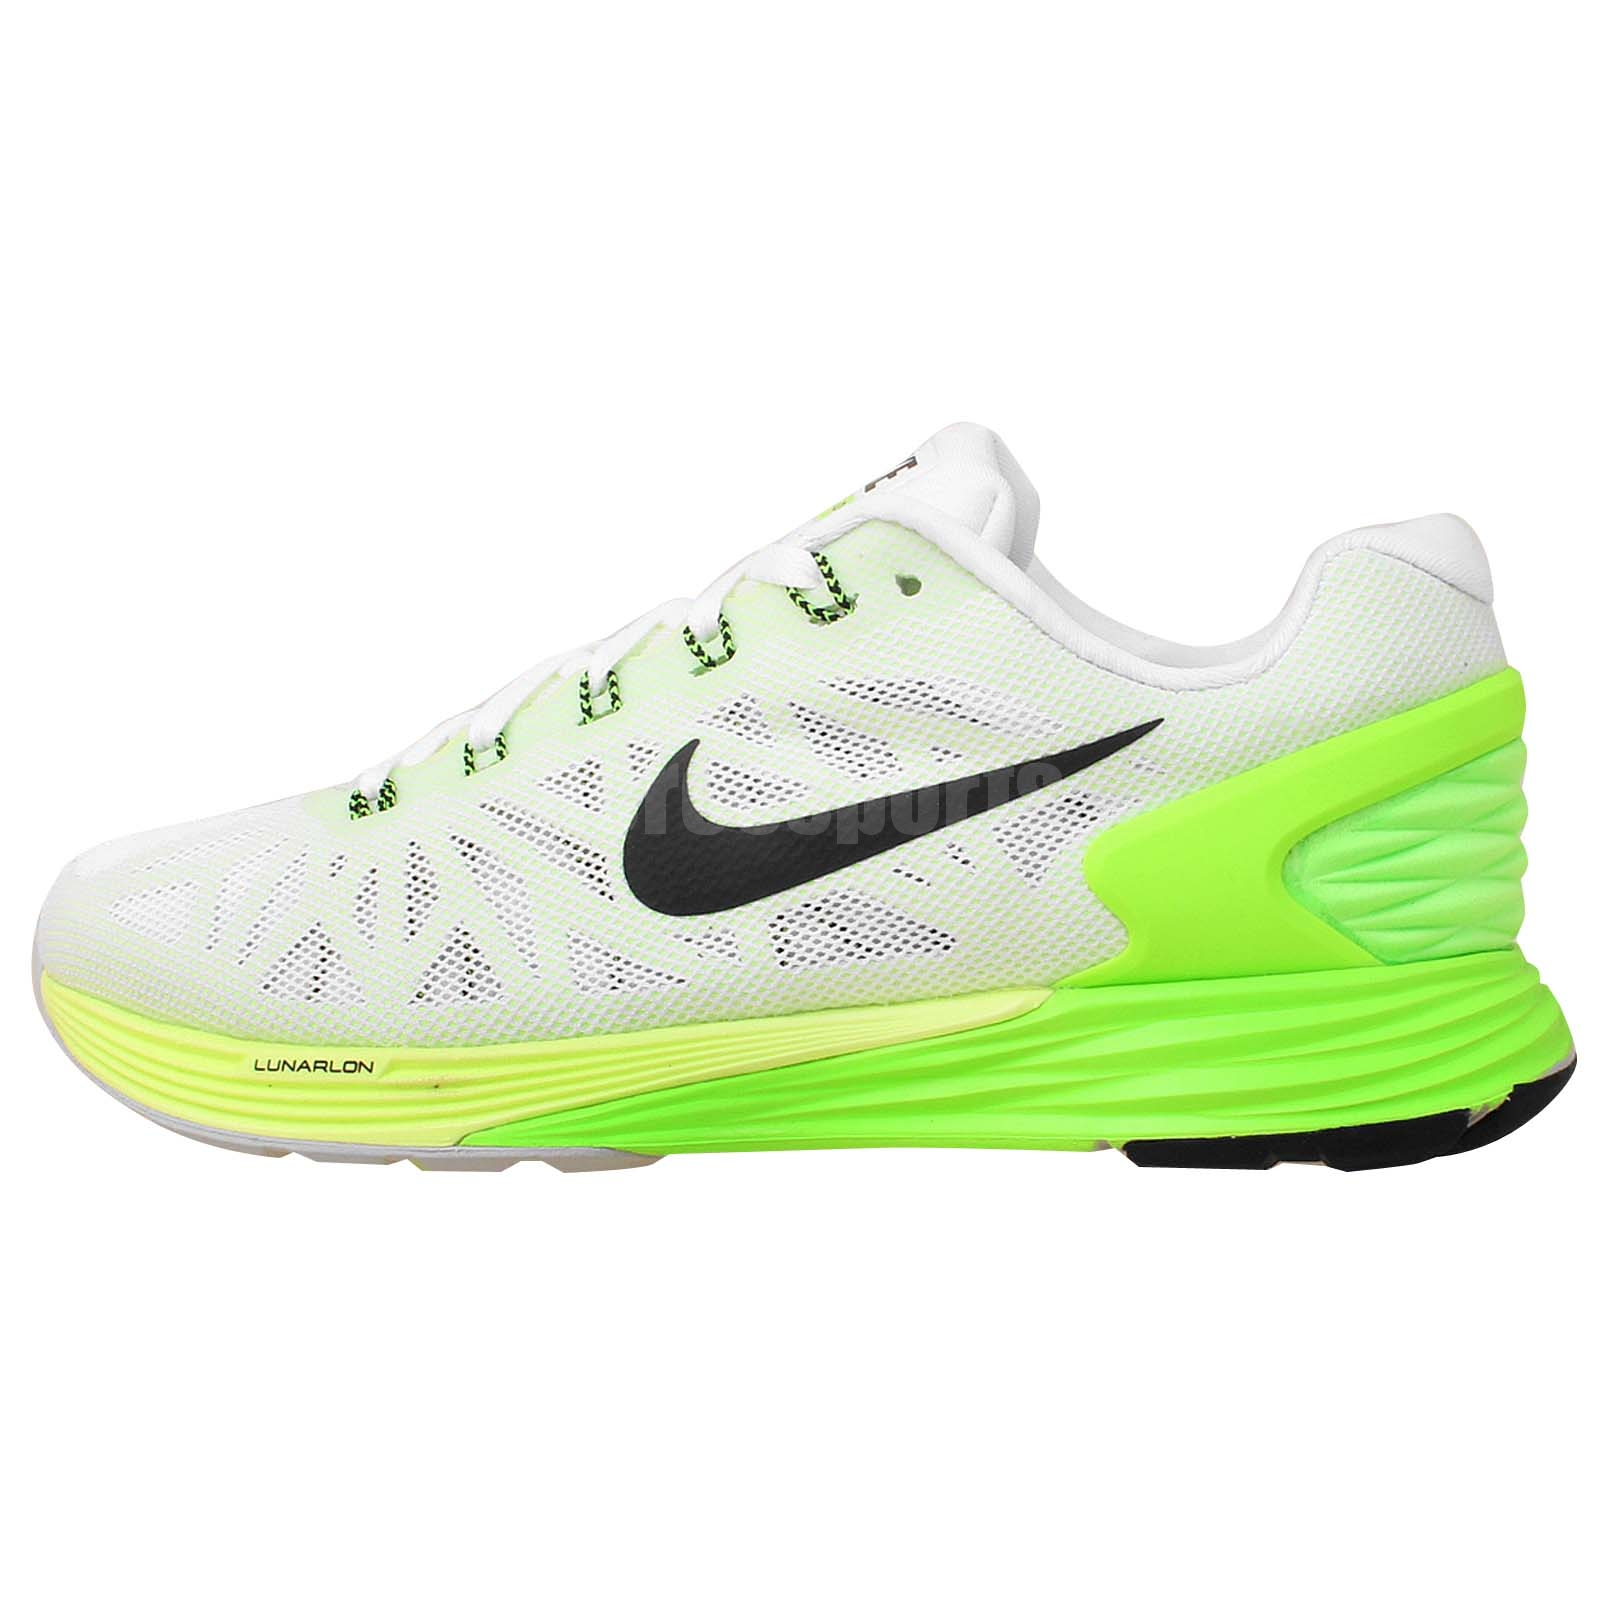 Elegant  Womens Shoes Neon Green OnlineReal Cheap Nike Air Max 90 Women Shoes